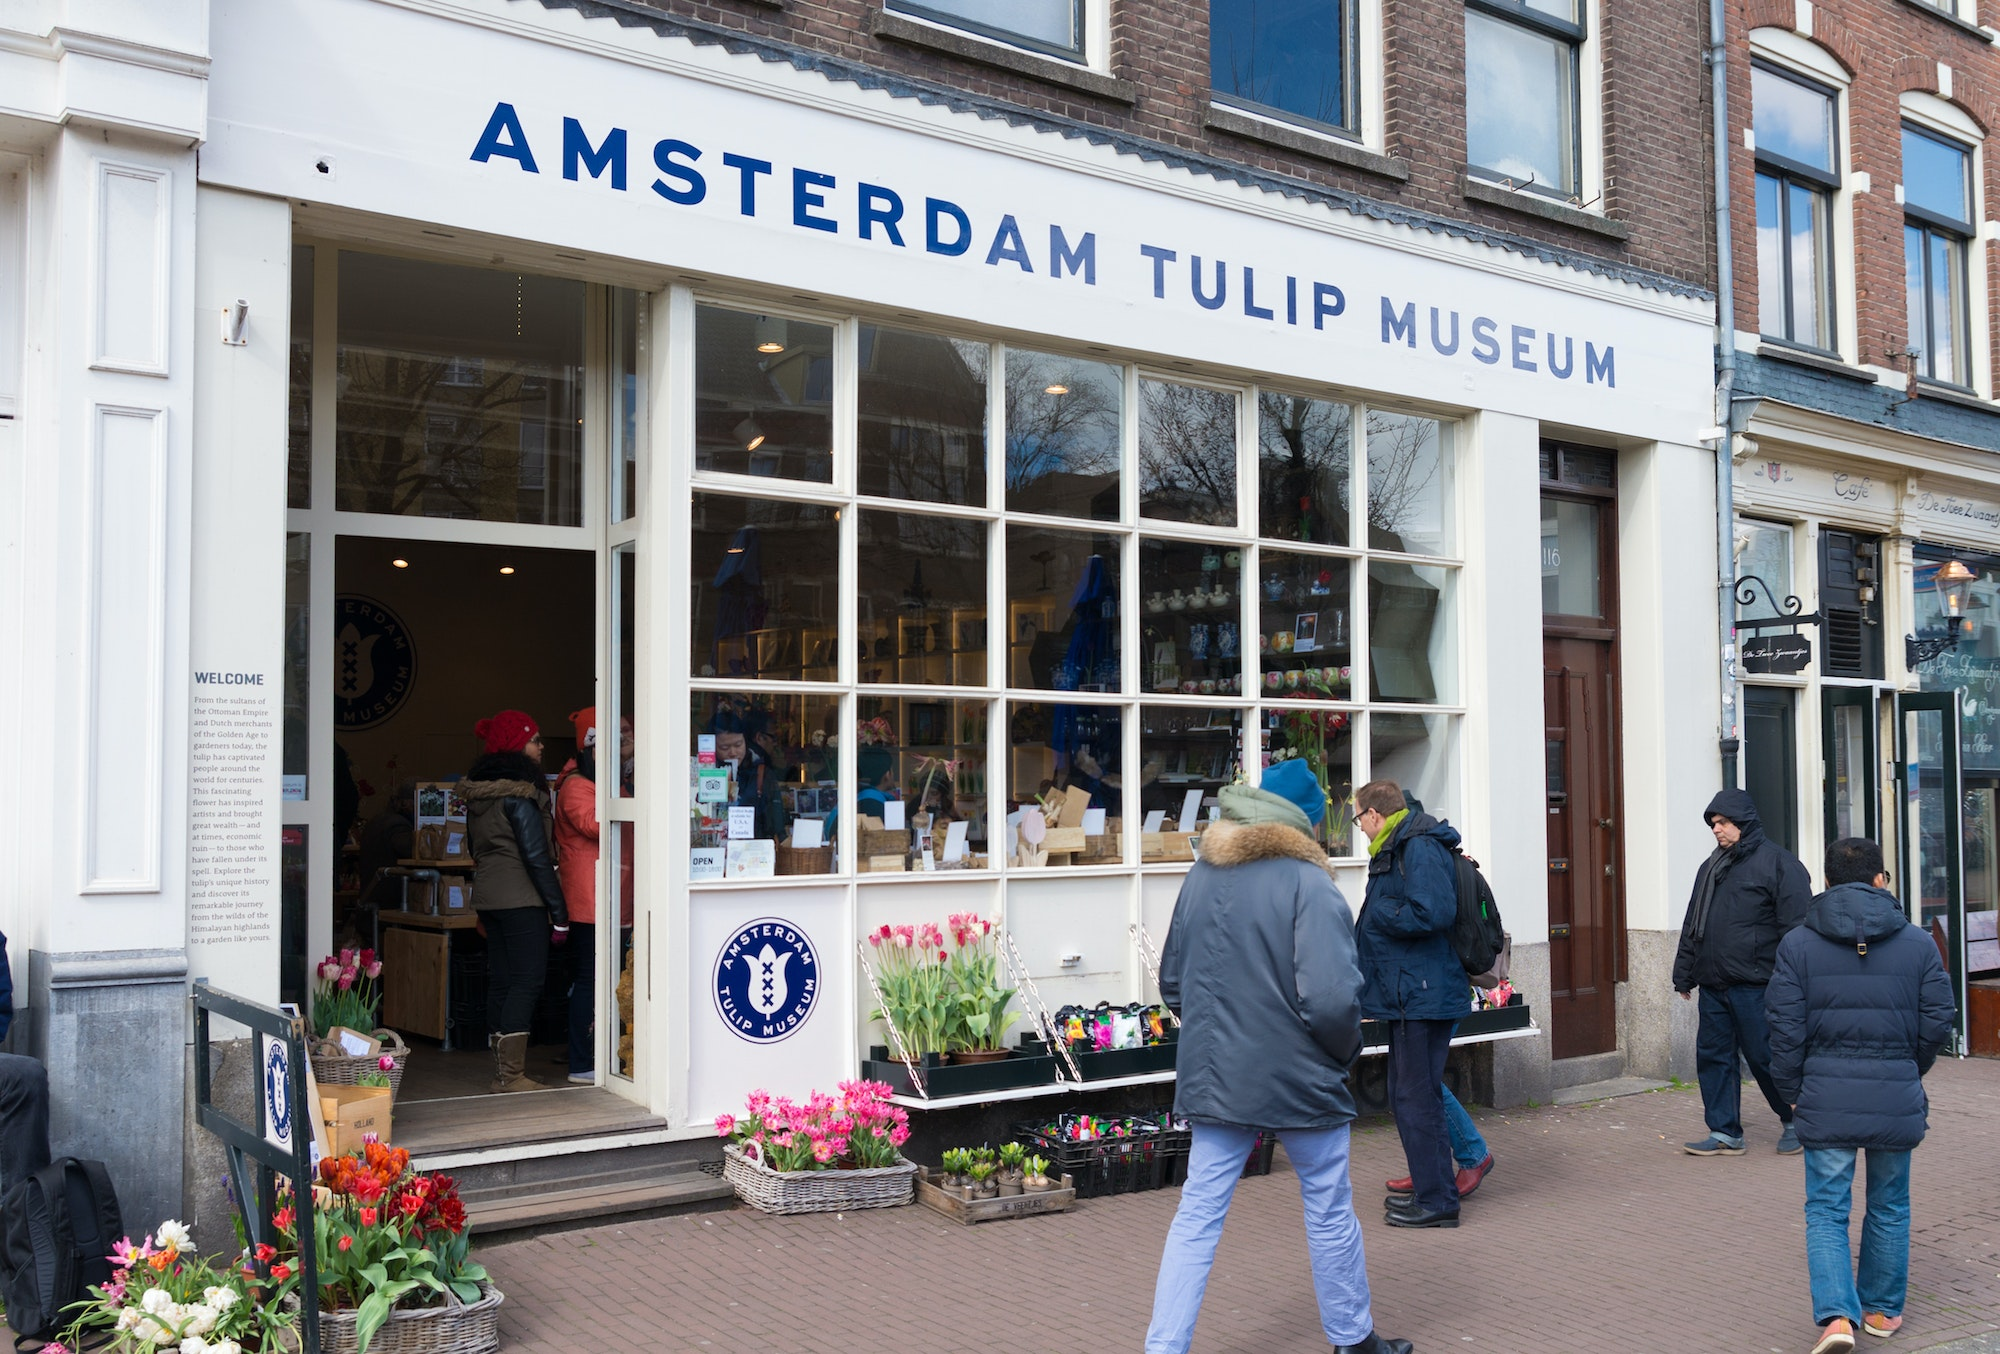 Exhibits at the Amsterdam Tulip Museum outline the history of the Dutch fascination with the tulip.